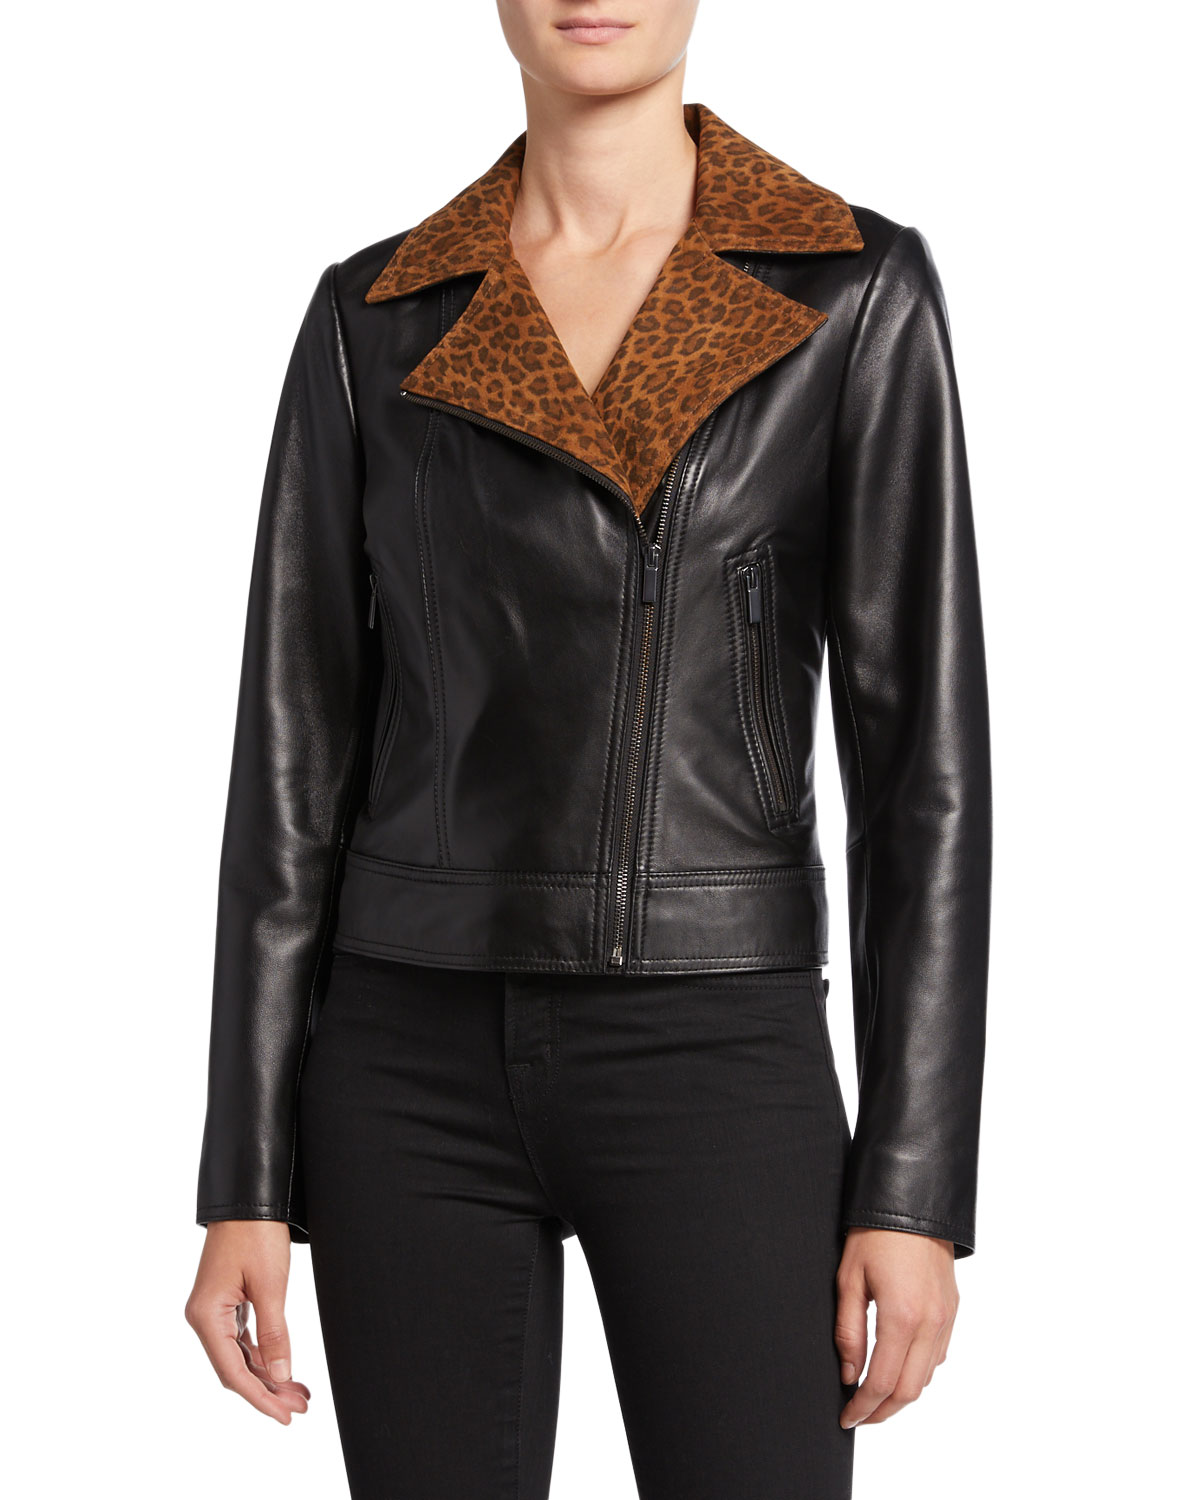 69f69e8d6d7d Neiman Marcus Leather Collection Lambskin Leather Moto Jacket with Leopard-Print  Collar